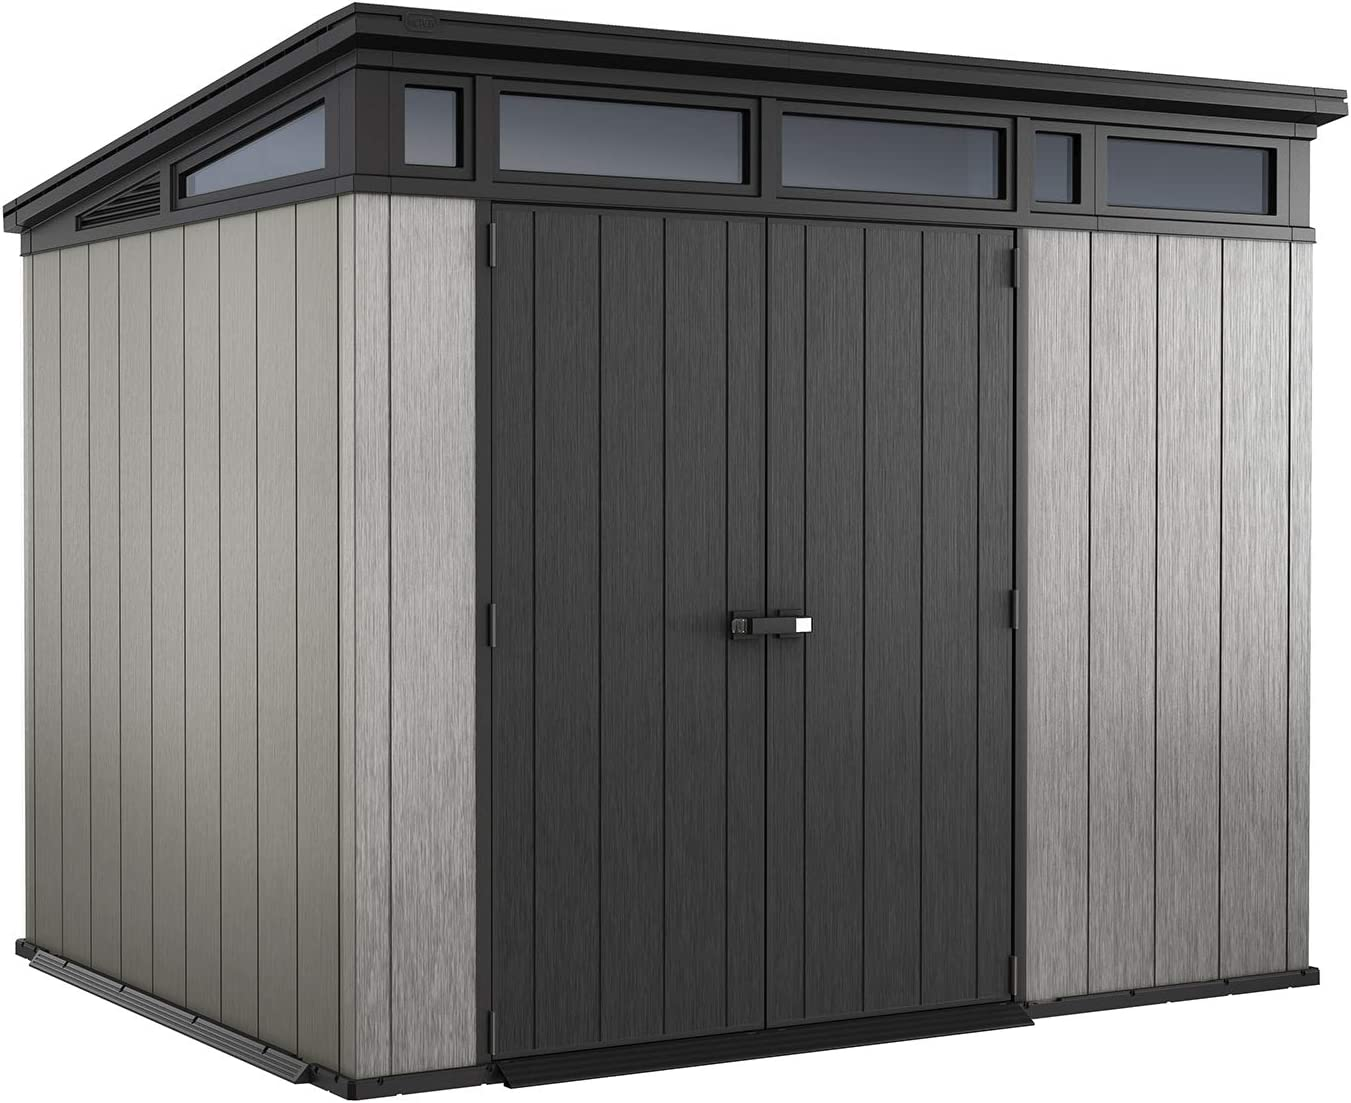 Keter Artisan 9×7 Large Outdoor Storage Kit with Modern Style and Design Perfect for a She Shed, Grey Black